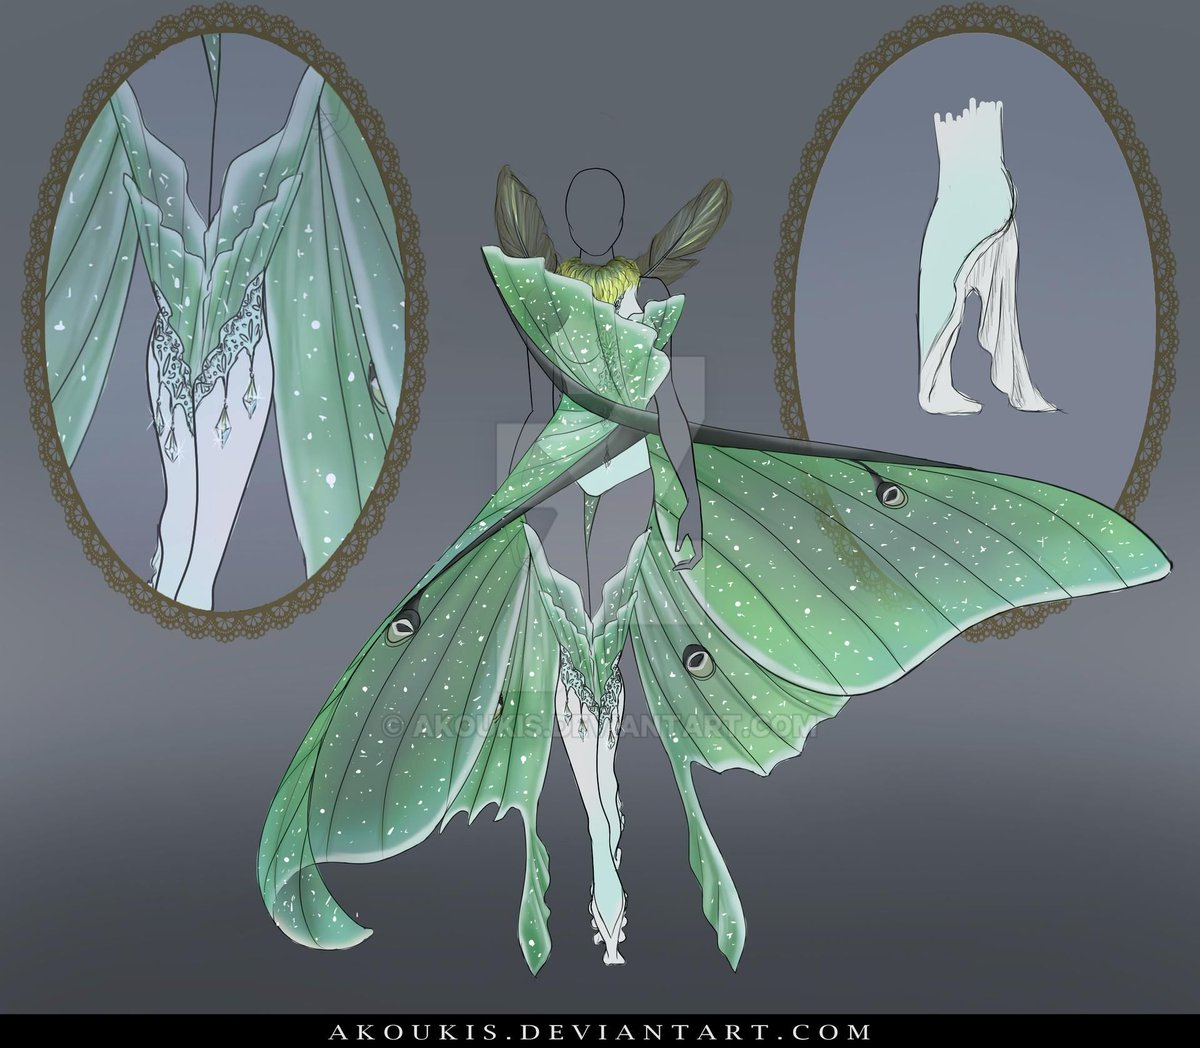 New auction is up on my @Deviantart gallery! This time it's based on the beautiful luna moth! https://t.co/s7YAdqtzik #fashion #auction #design #lunamoth #moth #butterfly #green #beautifull #adopt #adoptable #couture #hautecouture #fairy #dress #gown #fantasygown #inspiration https://t.co/yO8k8Mp3j7